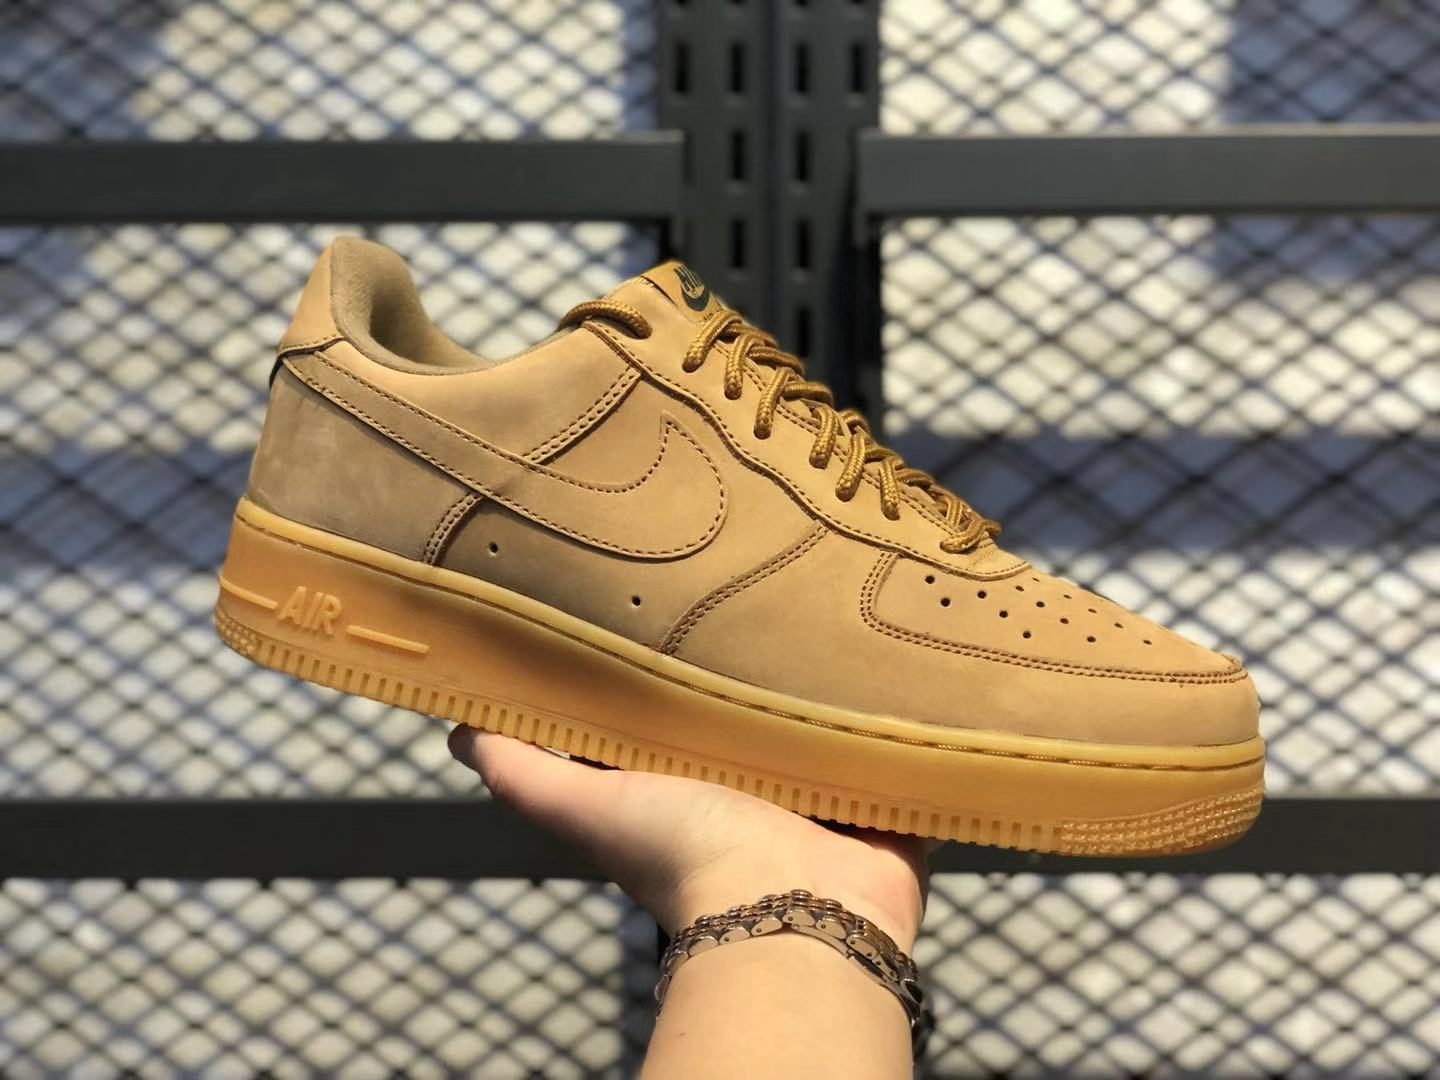 Nike Air Force 1 Low Flax Gum/Light Brown-Outdoor Green Sneakers To Buy